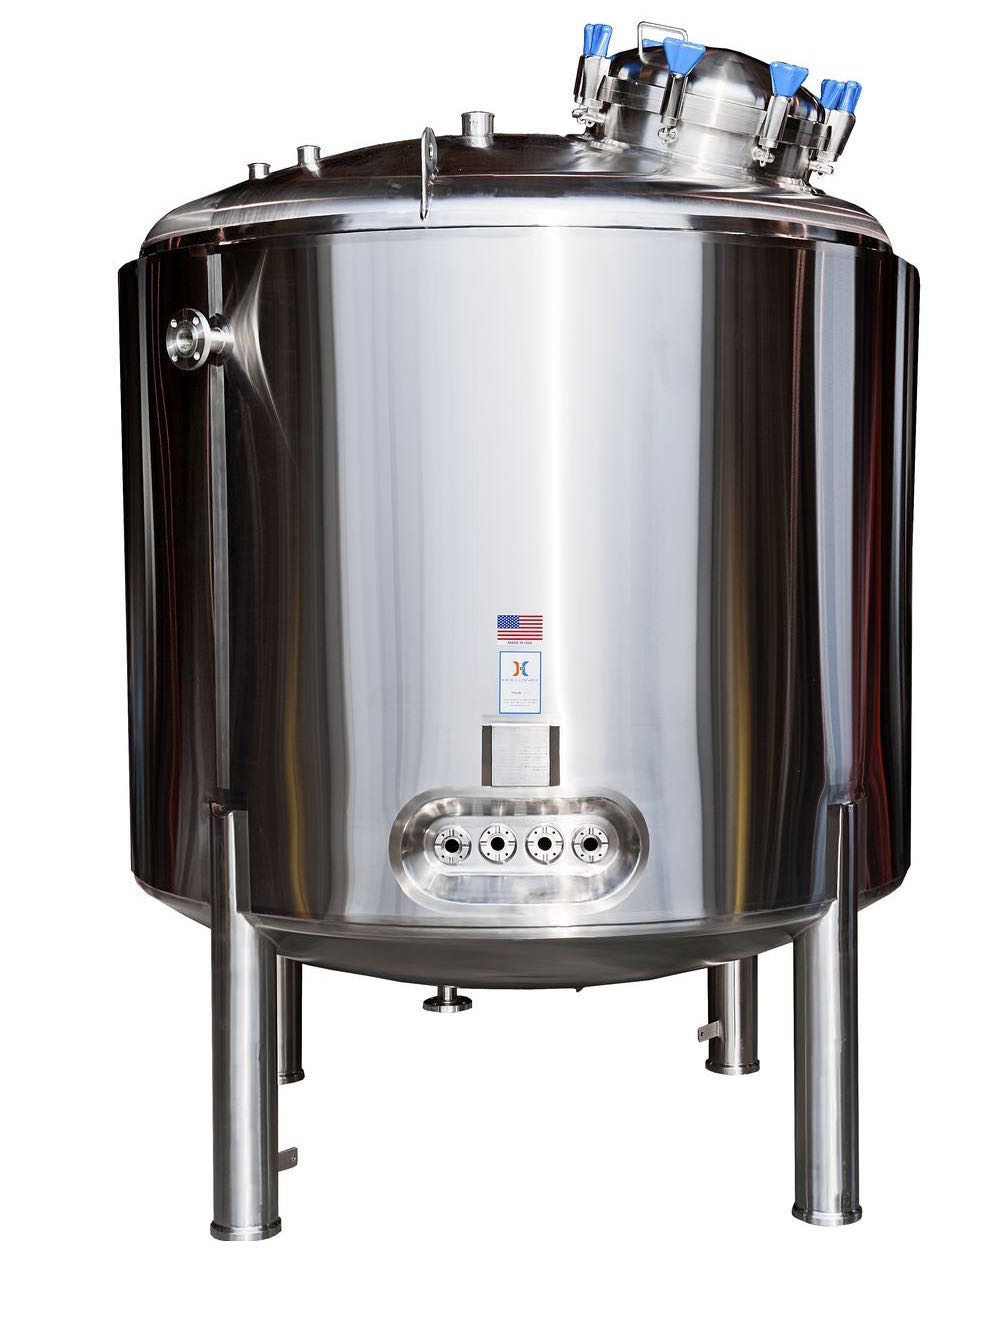 WFI pressure vessels, such as this stainless steel tank, keep water purified.